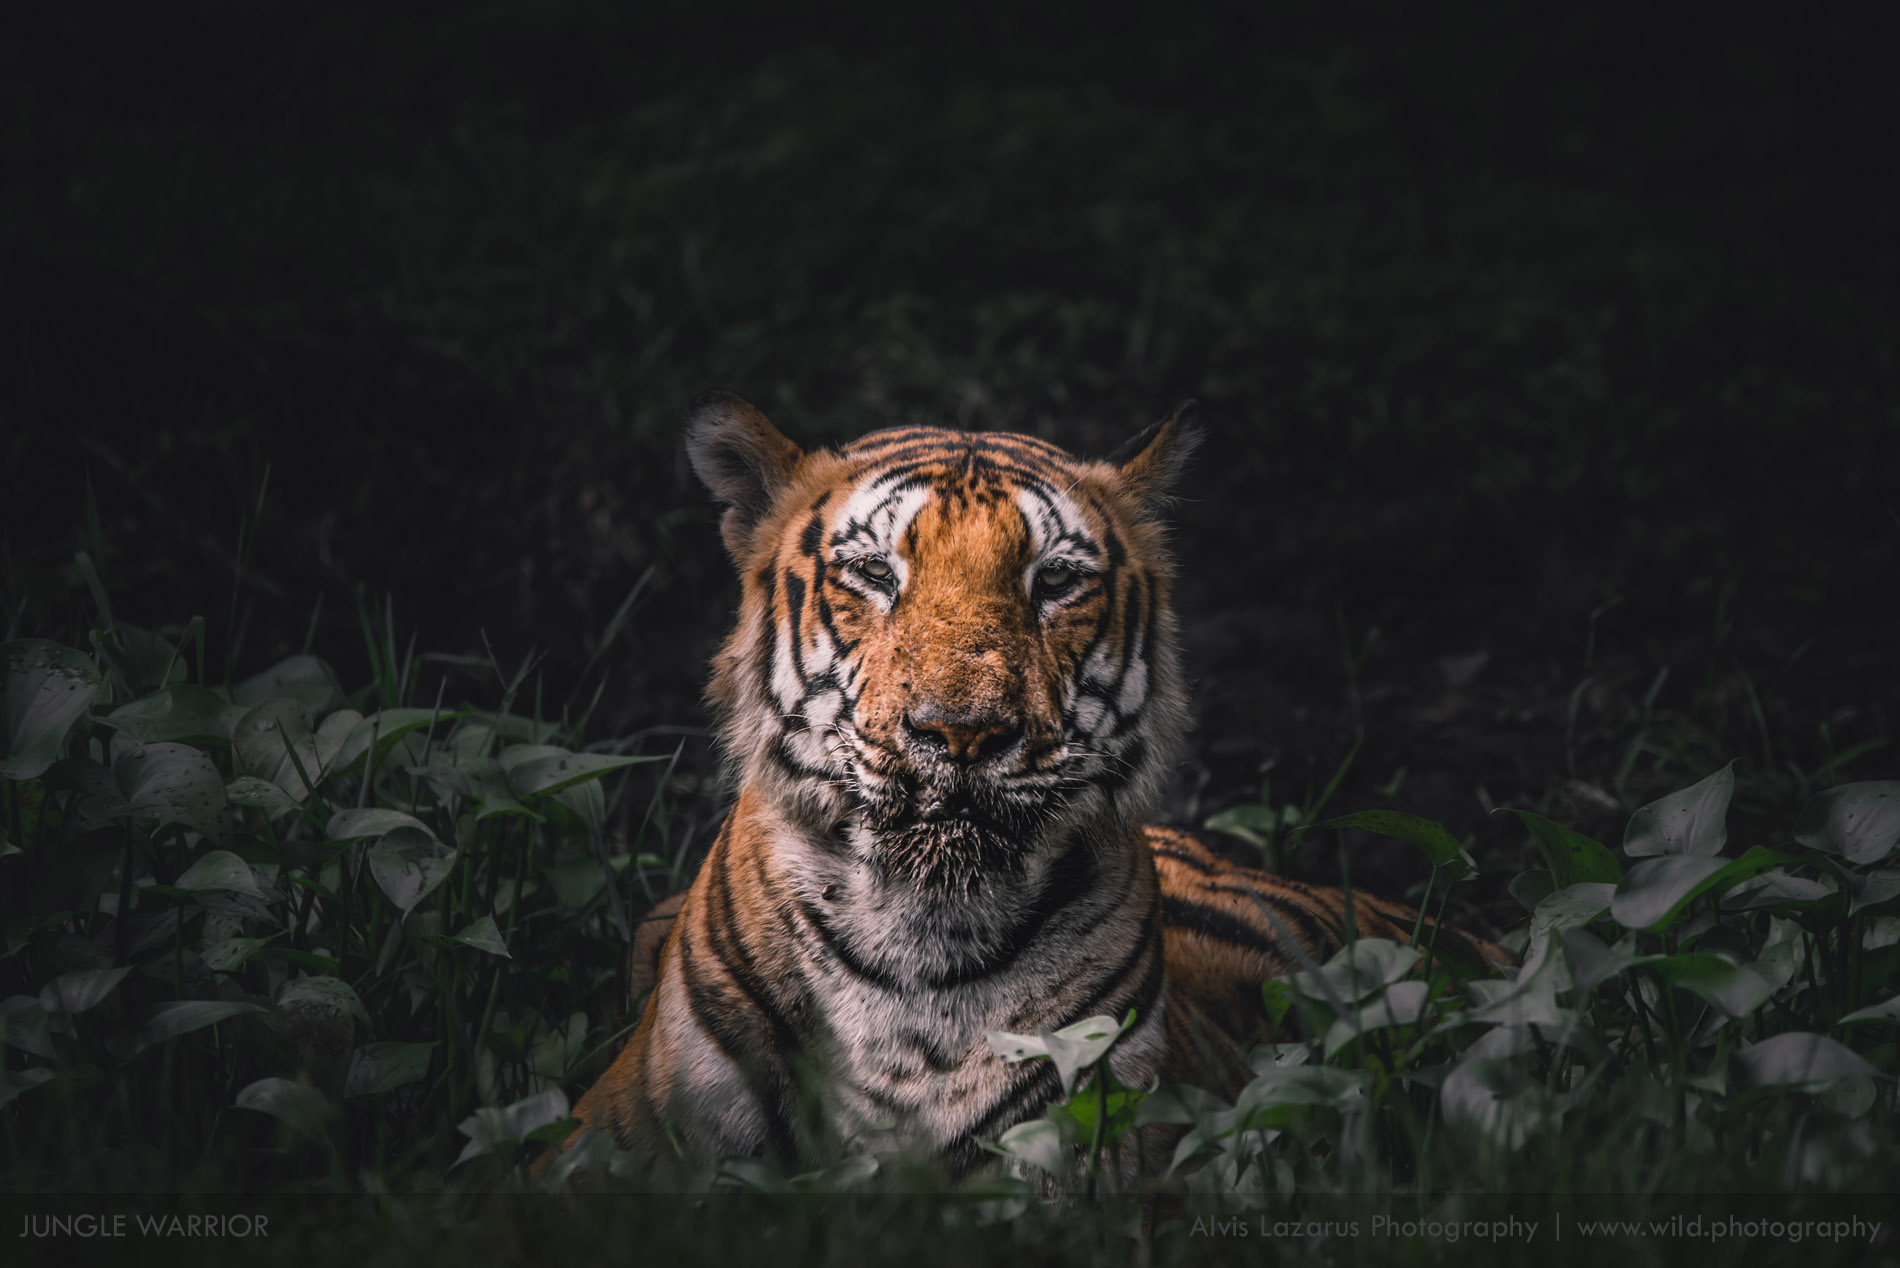 wildlife-photographer, wildlife photographer, wildlife photography, wild, wildlife, tiger picture, indian tiger, tiger safari, safari planner, safari agents, how to book travel to see tigers in india, wild photography, bangalore, mumbai, chennai, delhi, kabini, bandipur, bandhavgarh